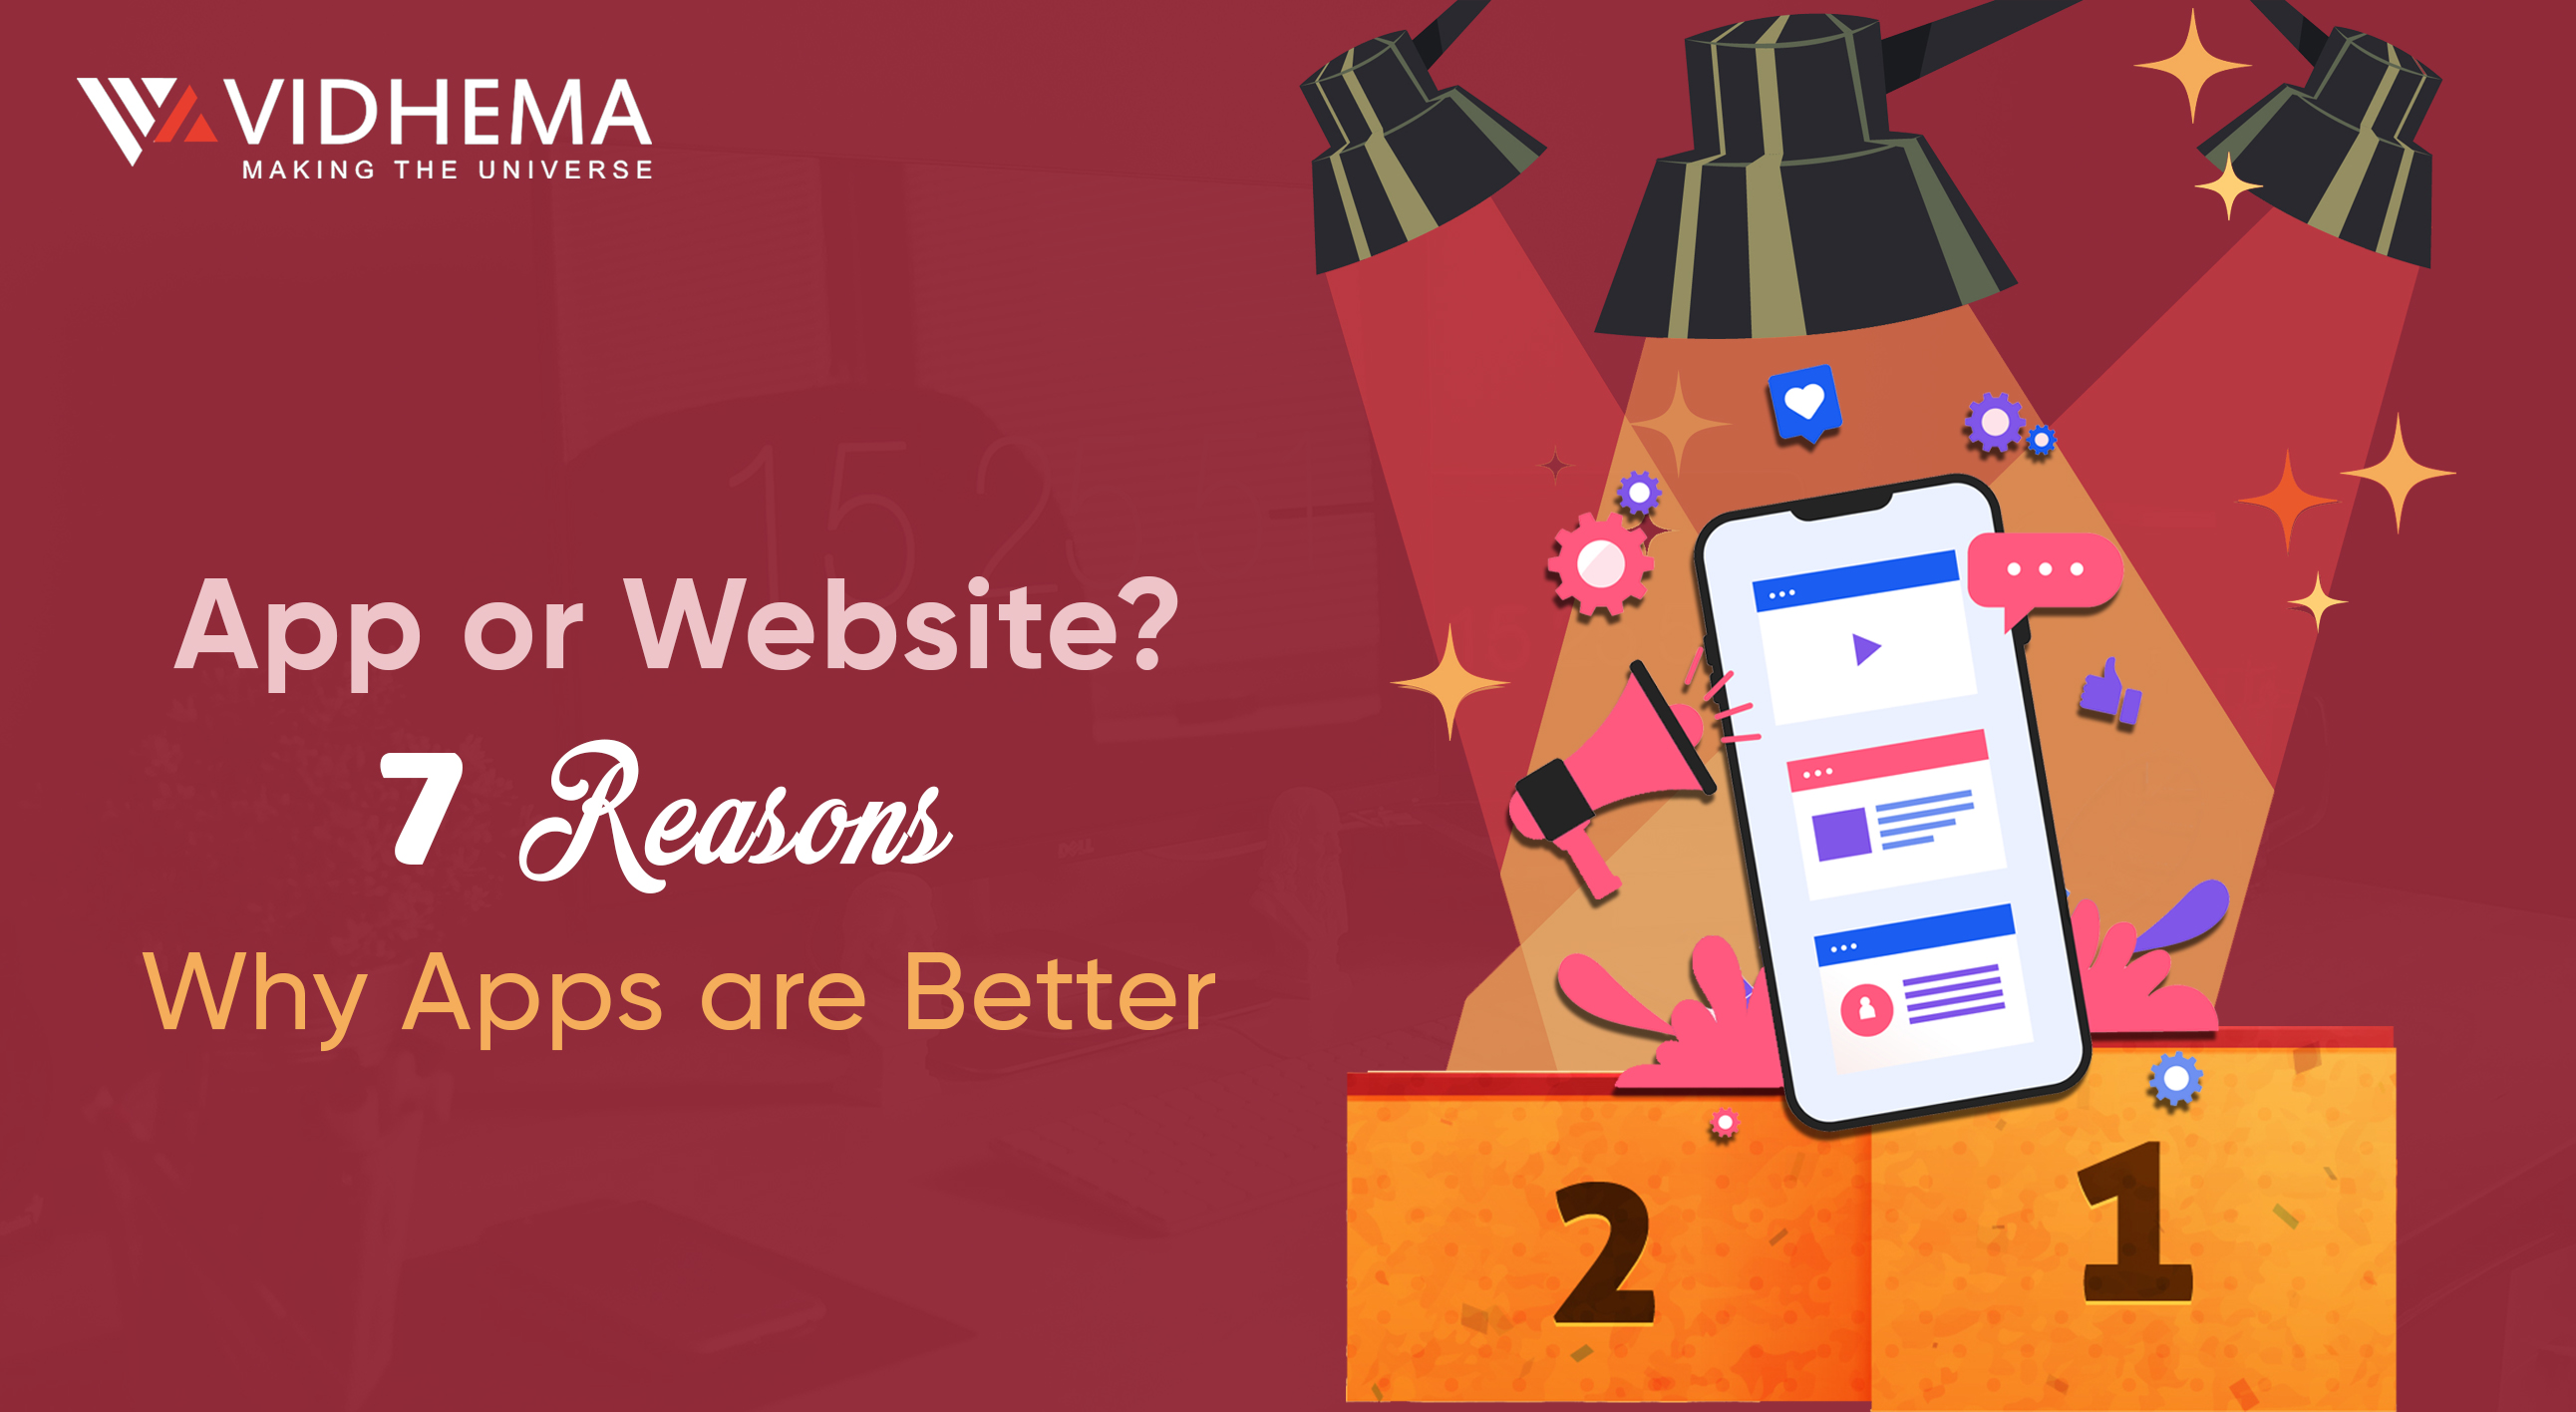 App or Website? 7 Reasons Why Apps are Better